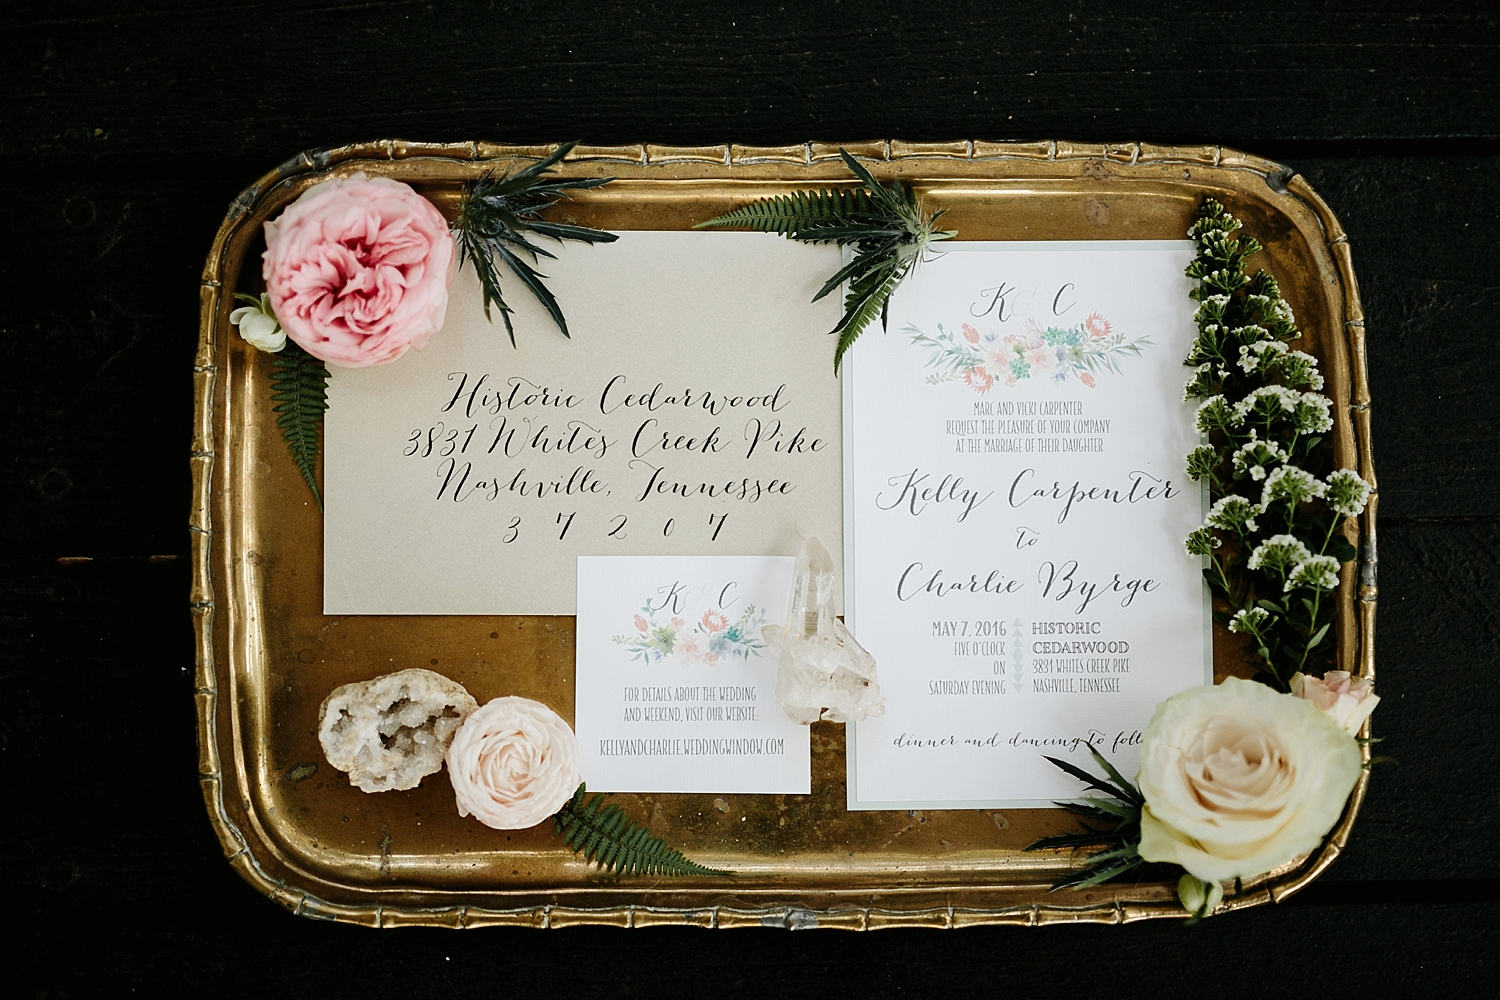 wedding invitation sitting on golden platter surrounded by flowers